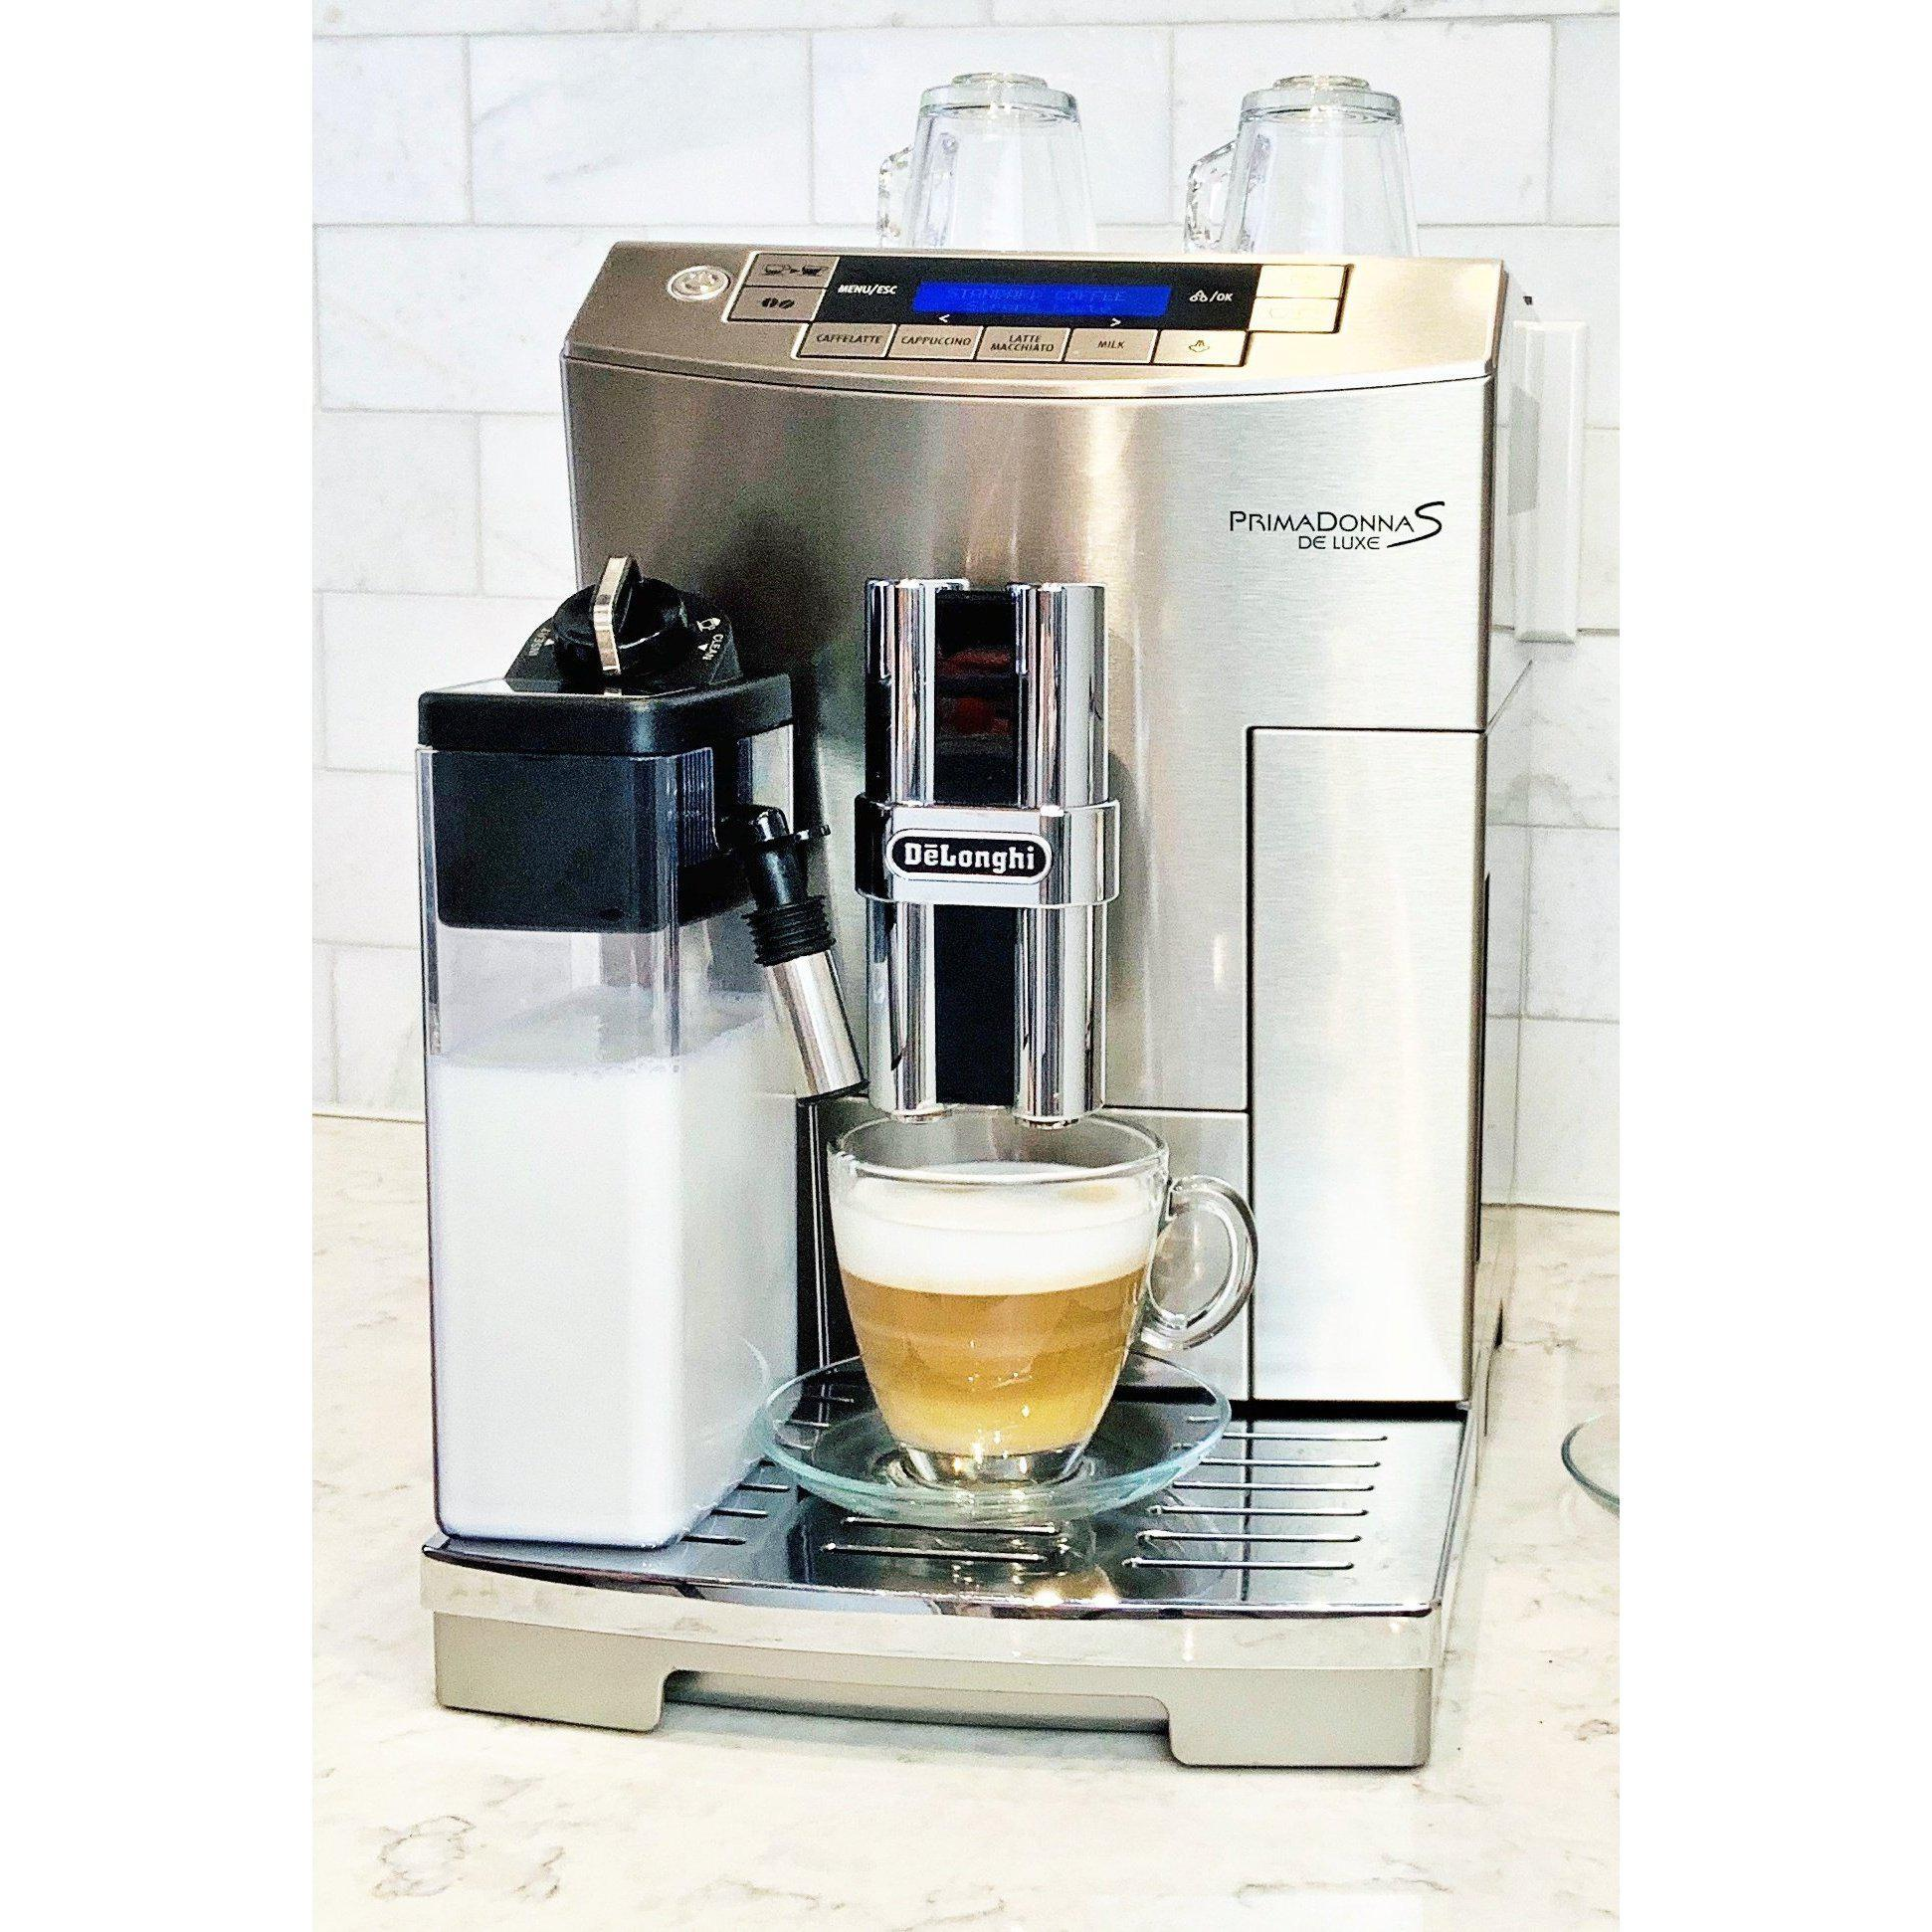 DeLonghi Prima Donna Super Automatic Deluxe Espresso Machine - ECAM28465M